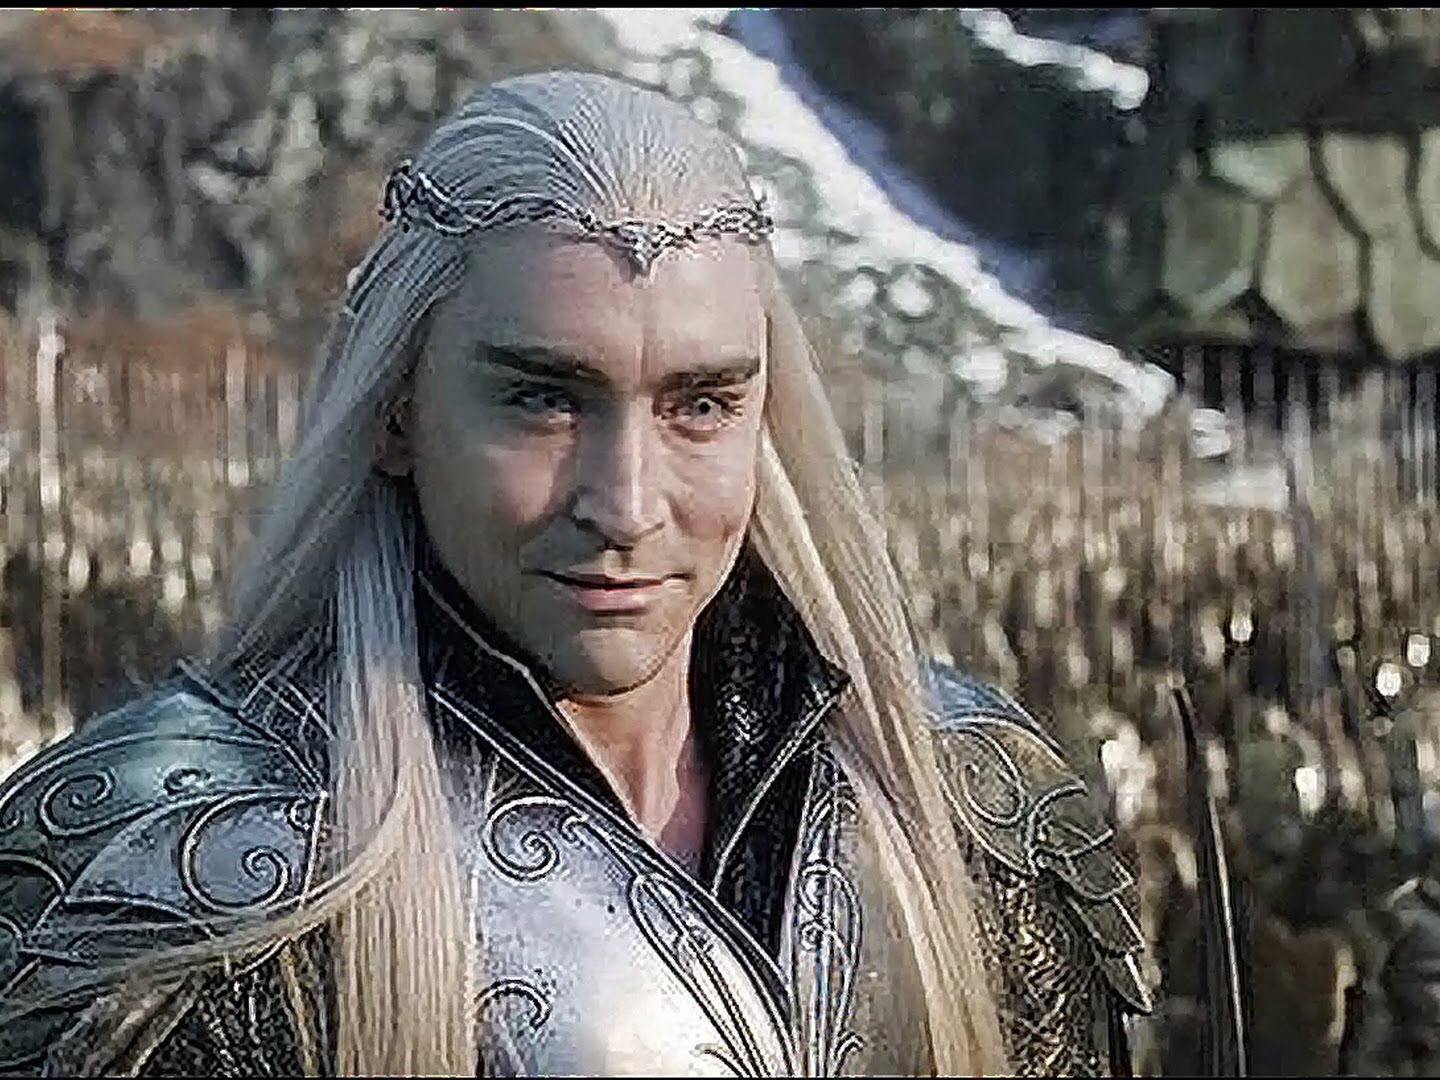 Thranduil is a fictional character in J. R. R. Tolkien's Middle-earth legendarium. He is a supporting character in The Hobbit, where he is referred to as the Elvenking, and he figures briefly in The Lord of the Rings, The Silmarillion, and Unfinished Tales. Tolkien describes Thranduil as having a crown made of red leaves and berries in the autumn, and wearing a similar crown of flowers in the spring. Like most of the Sindar, he would have been beardless, tall, and grey-eyed. The name